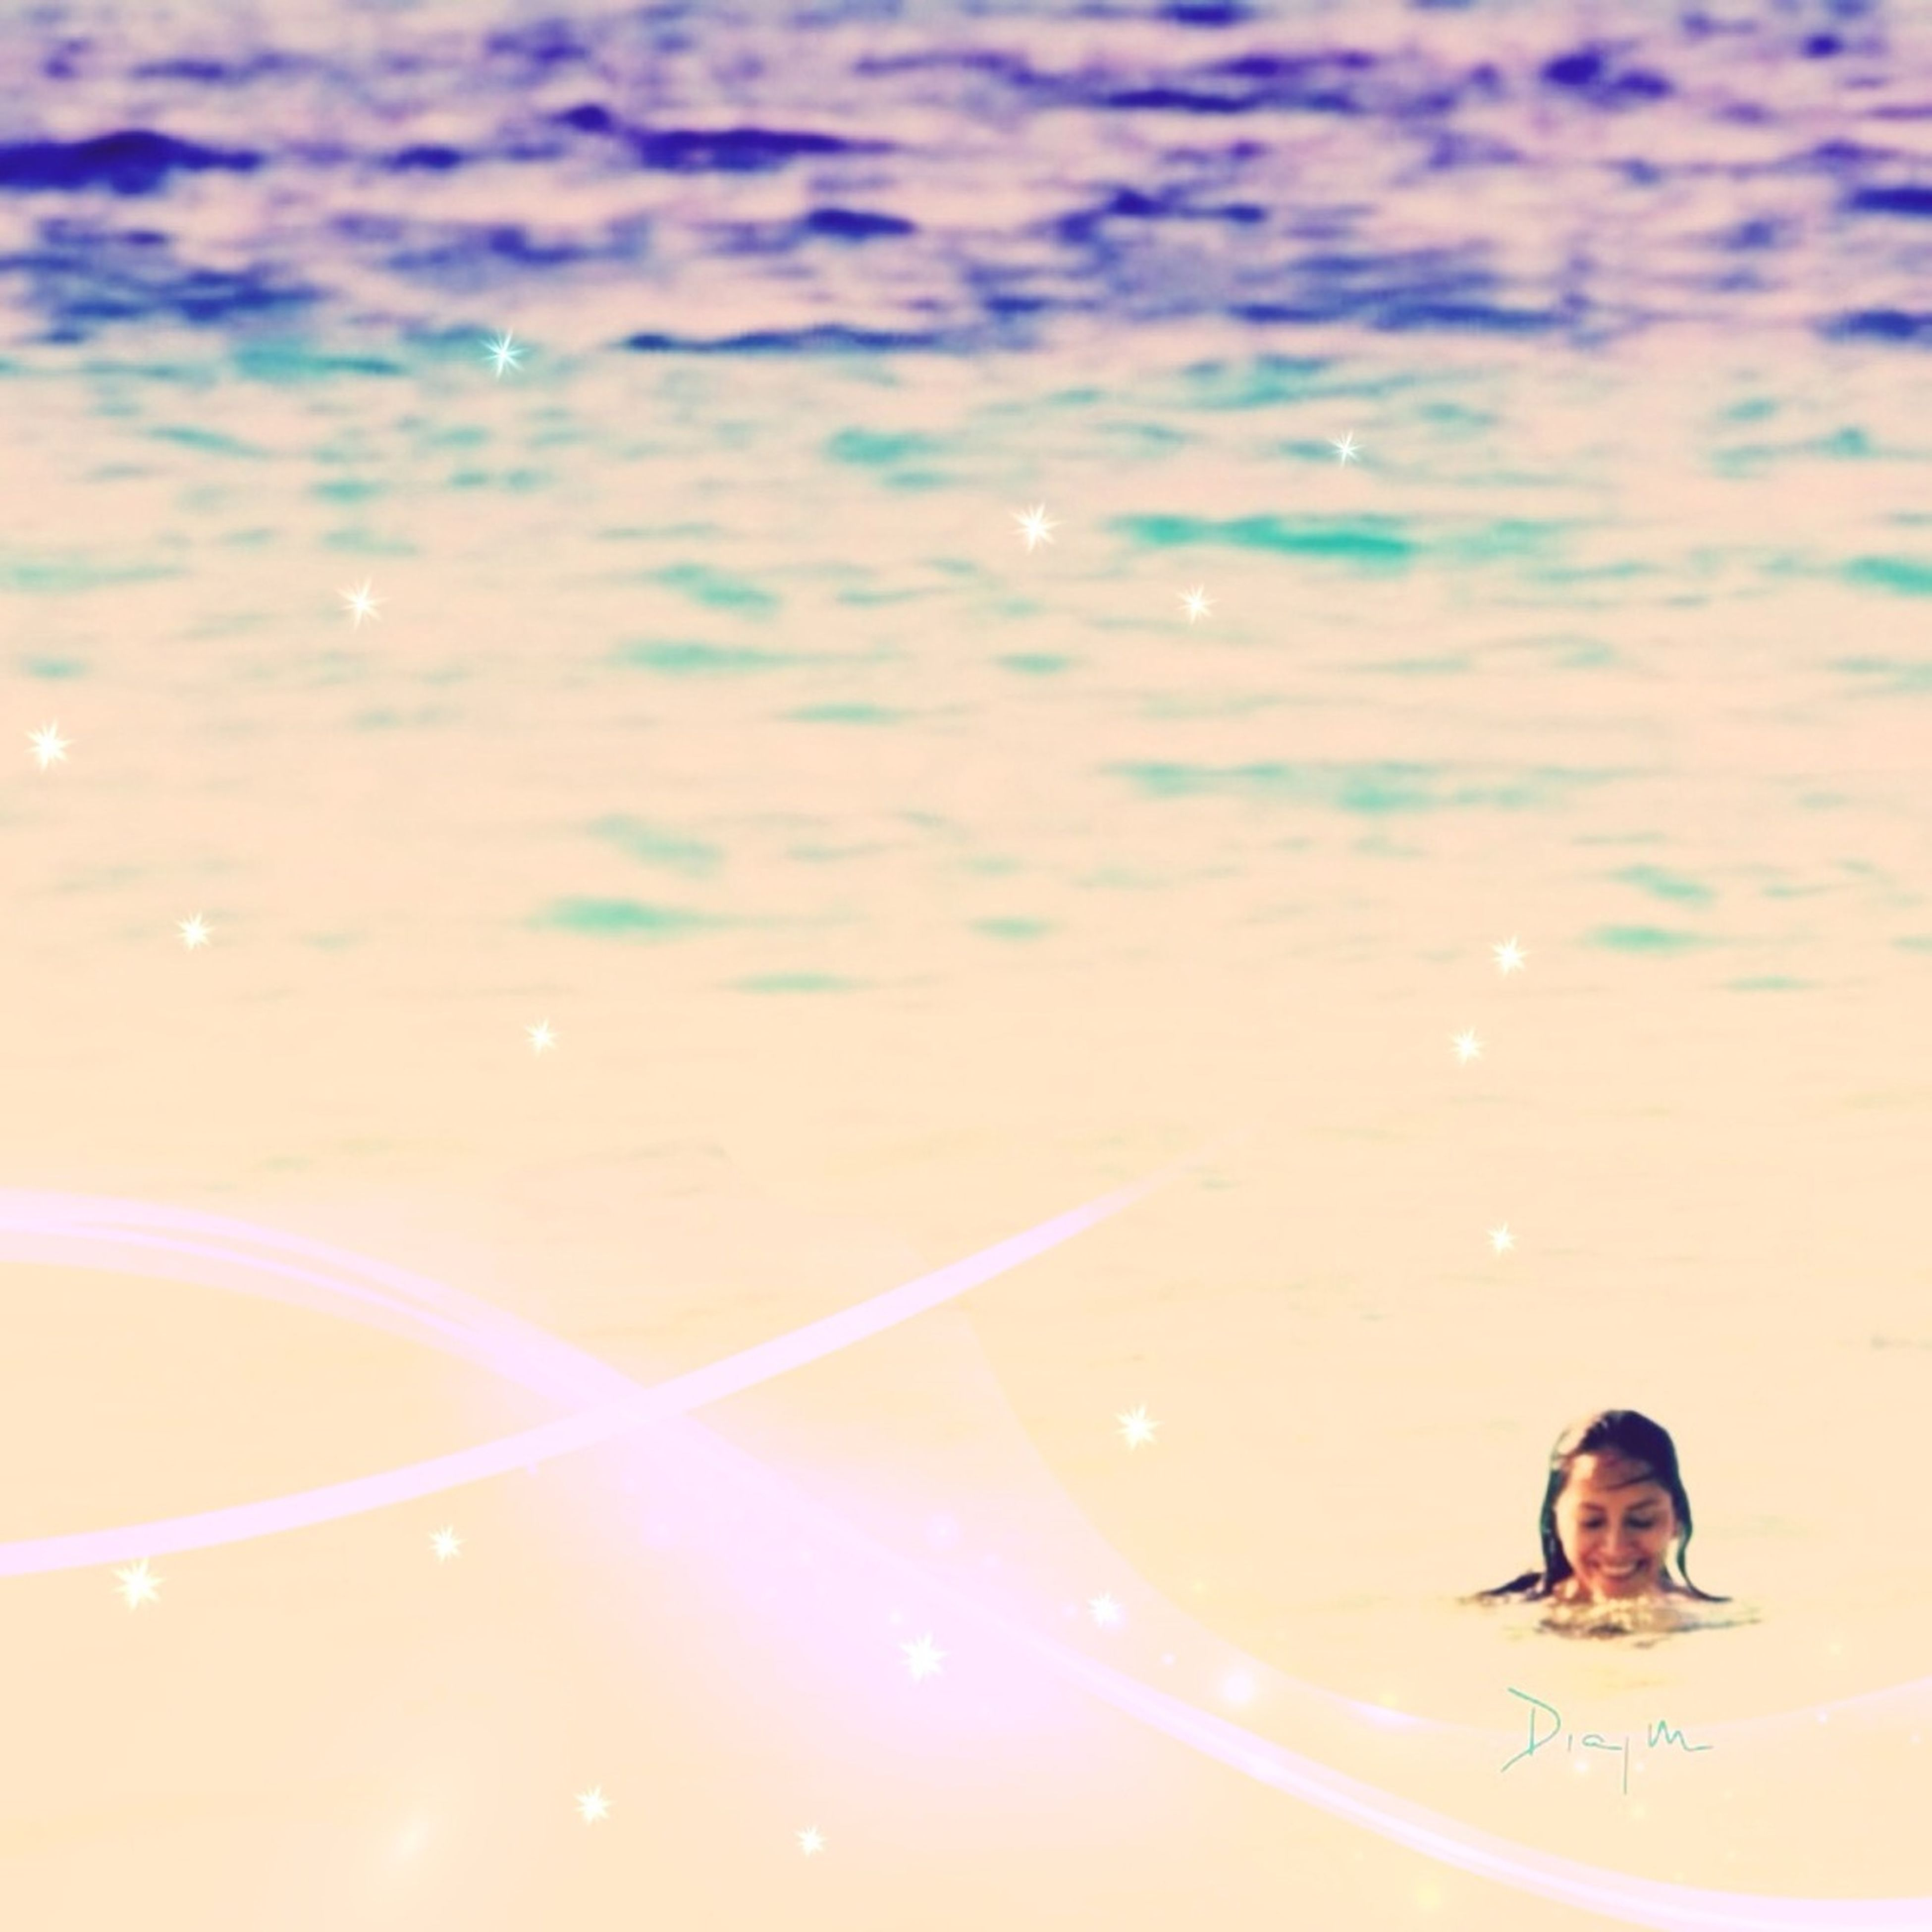 water, childhood, high angle view, bubble, motion, reflection, swimming pool, waterfront, close-up, swimming, leisure activity, fun, blue, transparent, outdoors, day, lifestyles, toy